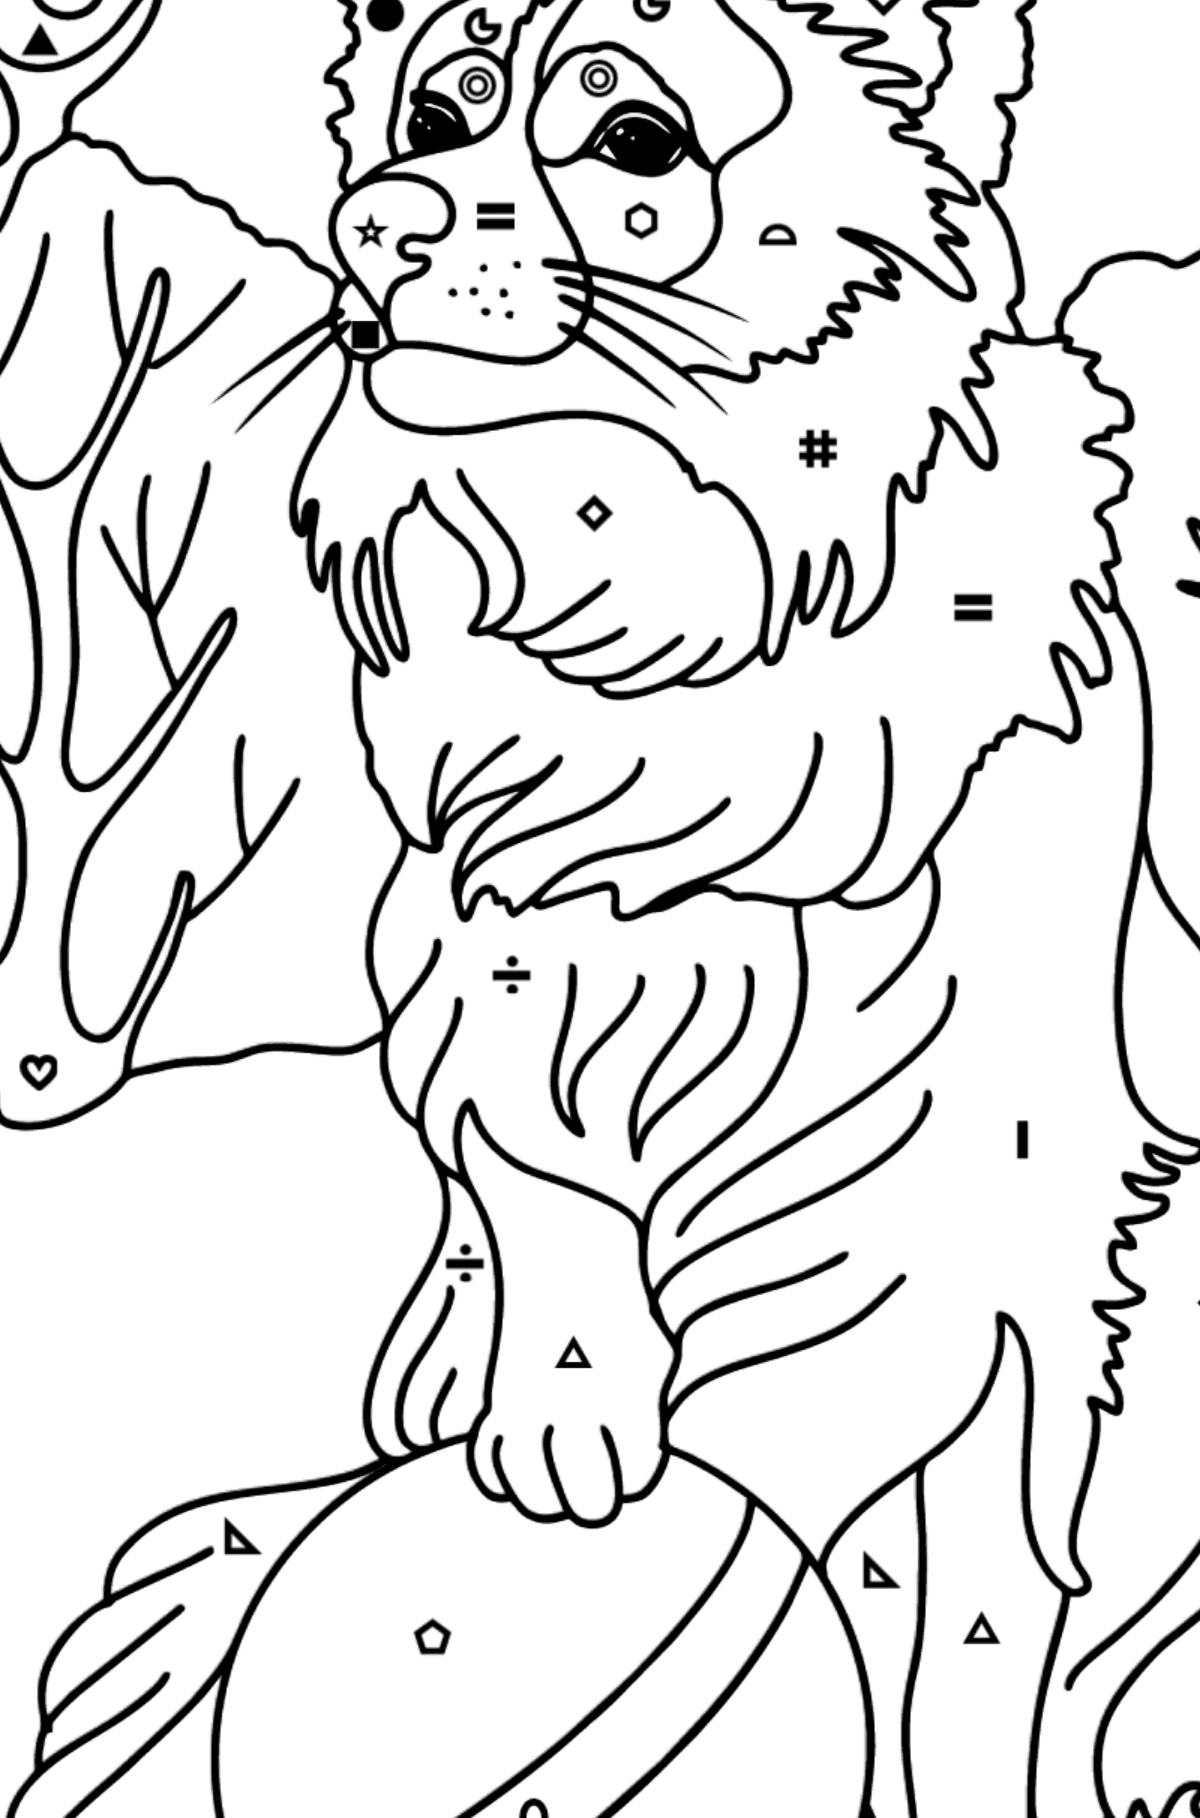 Collie coloring page - Coloring by Symbols and Geometric Shapes for Kids